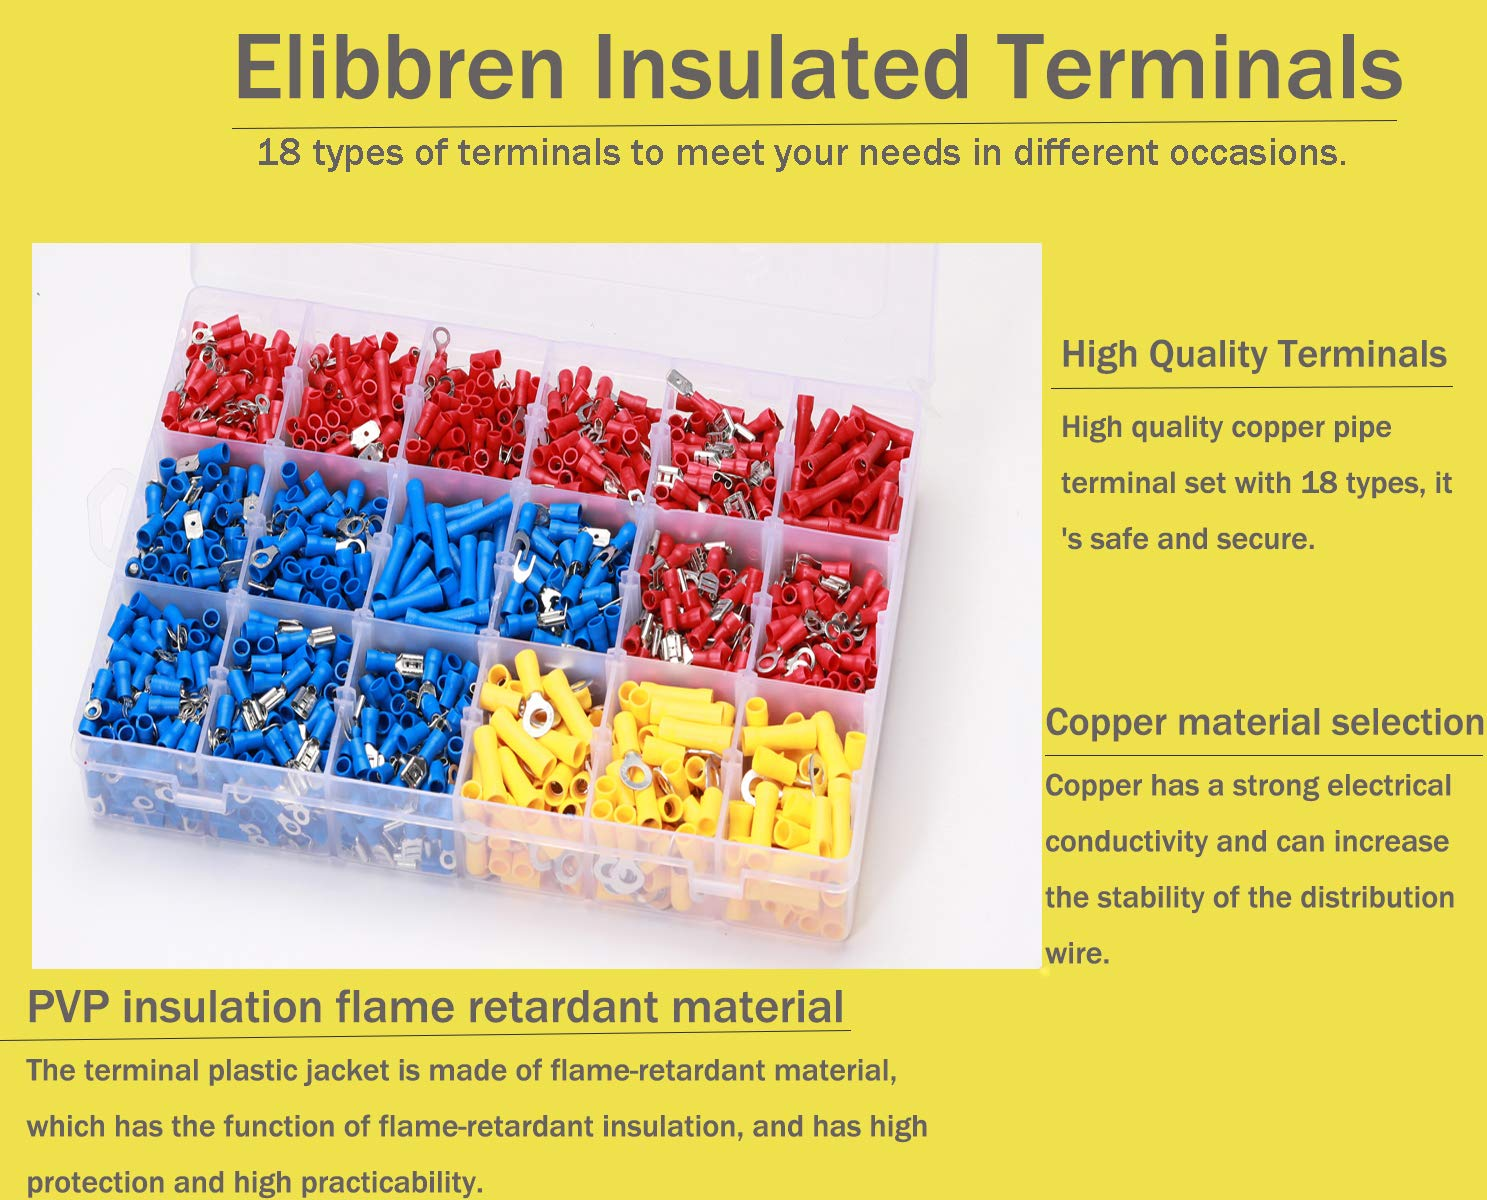 1200PCS Wire Connectors Insulated Electrical Wire Terminals Elibbren Insulated Wiring Terminals Crimp Connector Terminal Assortment Kit for Automotive by Elibbren (Image #3)